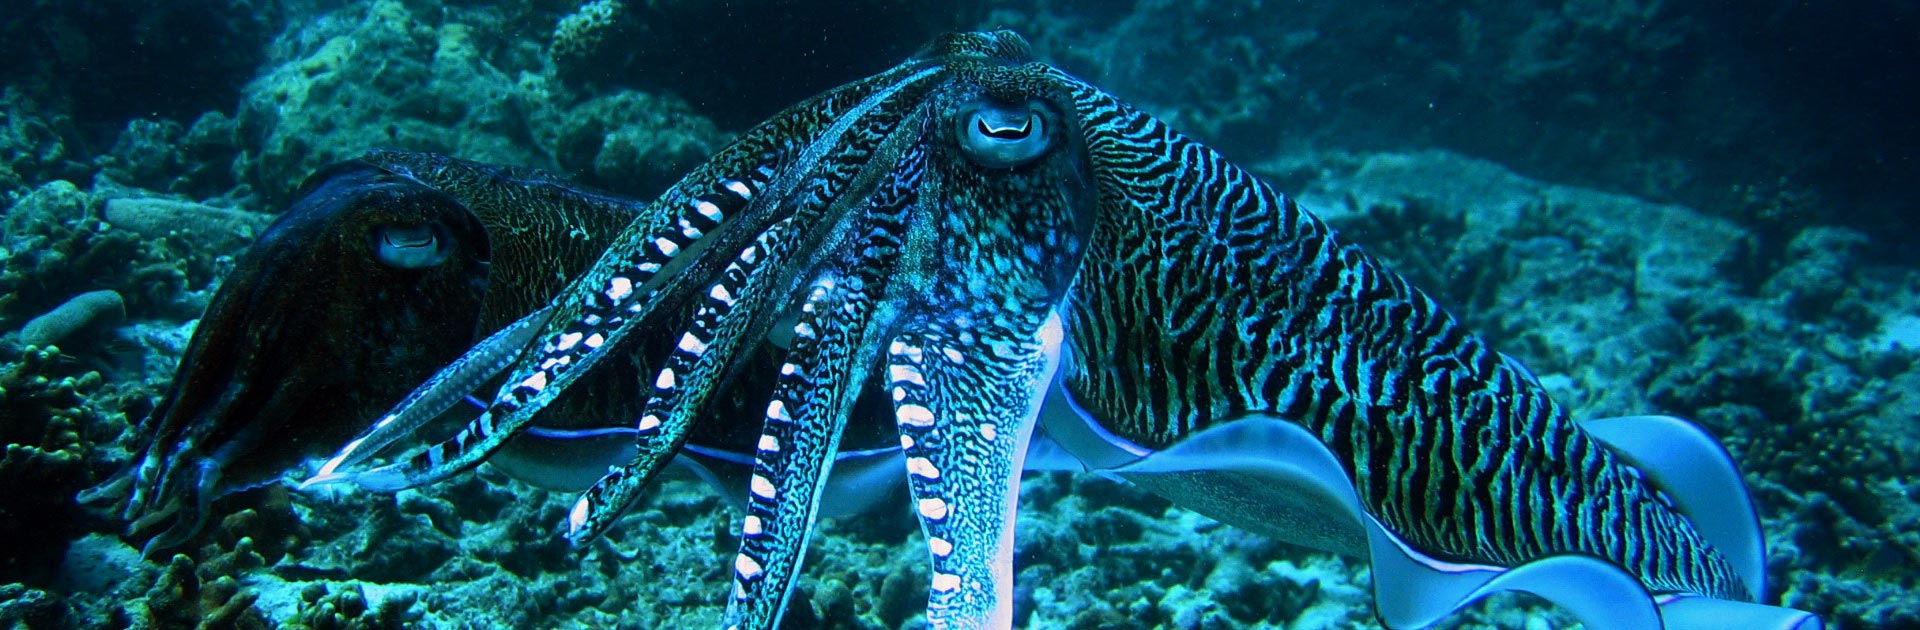 Night diving in Phuket brings out spectacular creatures like this electric Cuttlefish